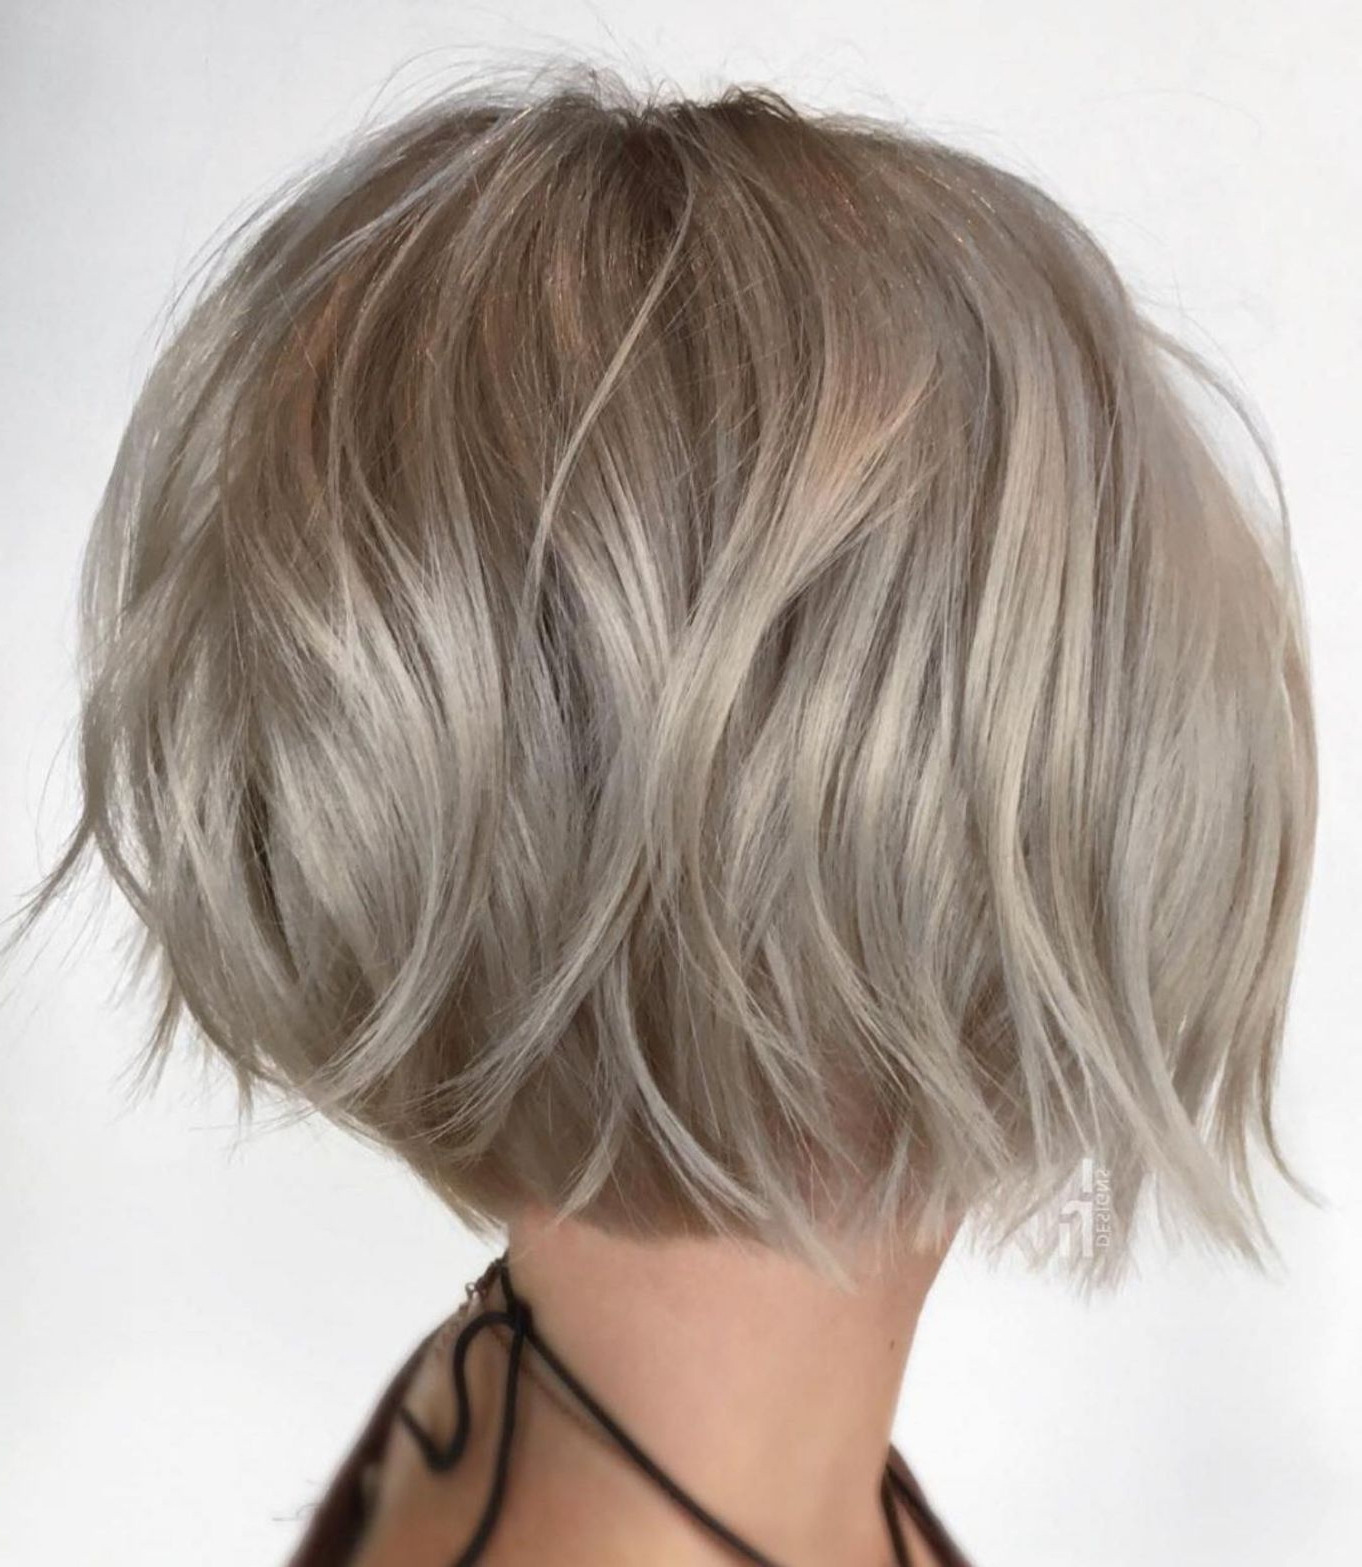 Fashion : Amazing Choppy Side Parted Pixie Bob Hairstyles Photo 100 With Widely Used Choppy Side Parted Bob Hairstyles (View 5 of 20)